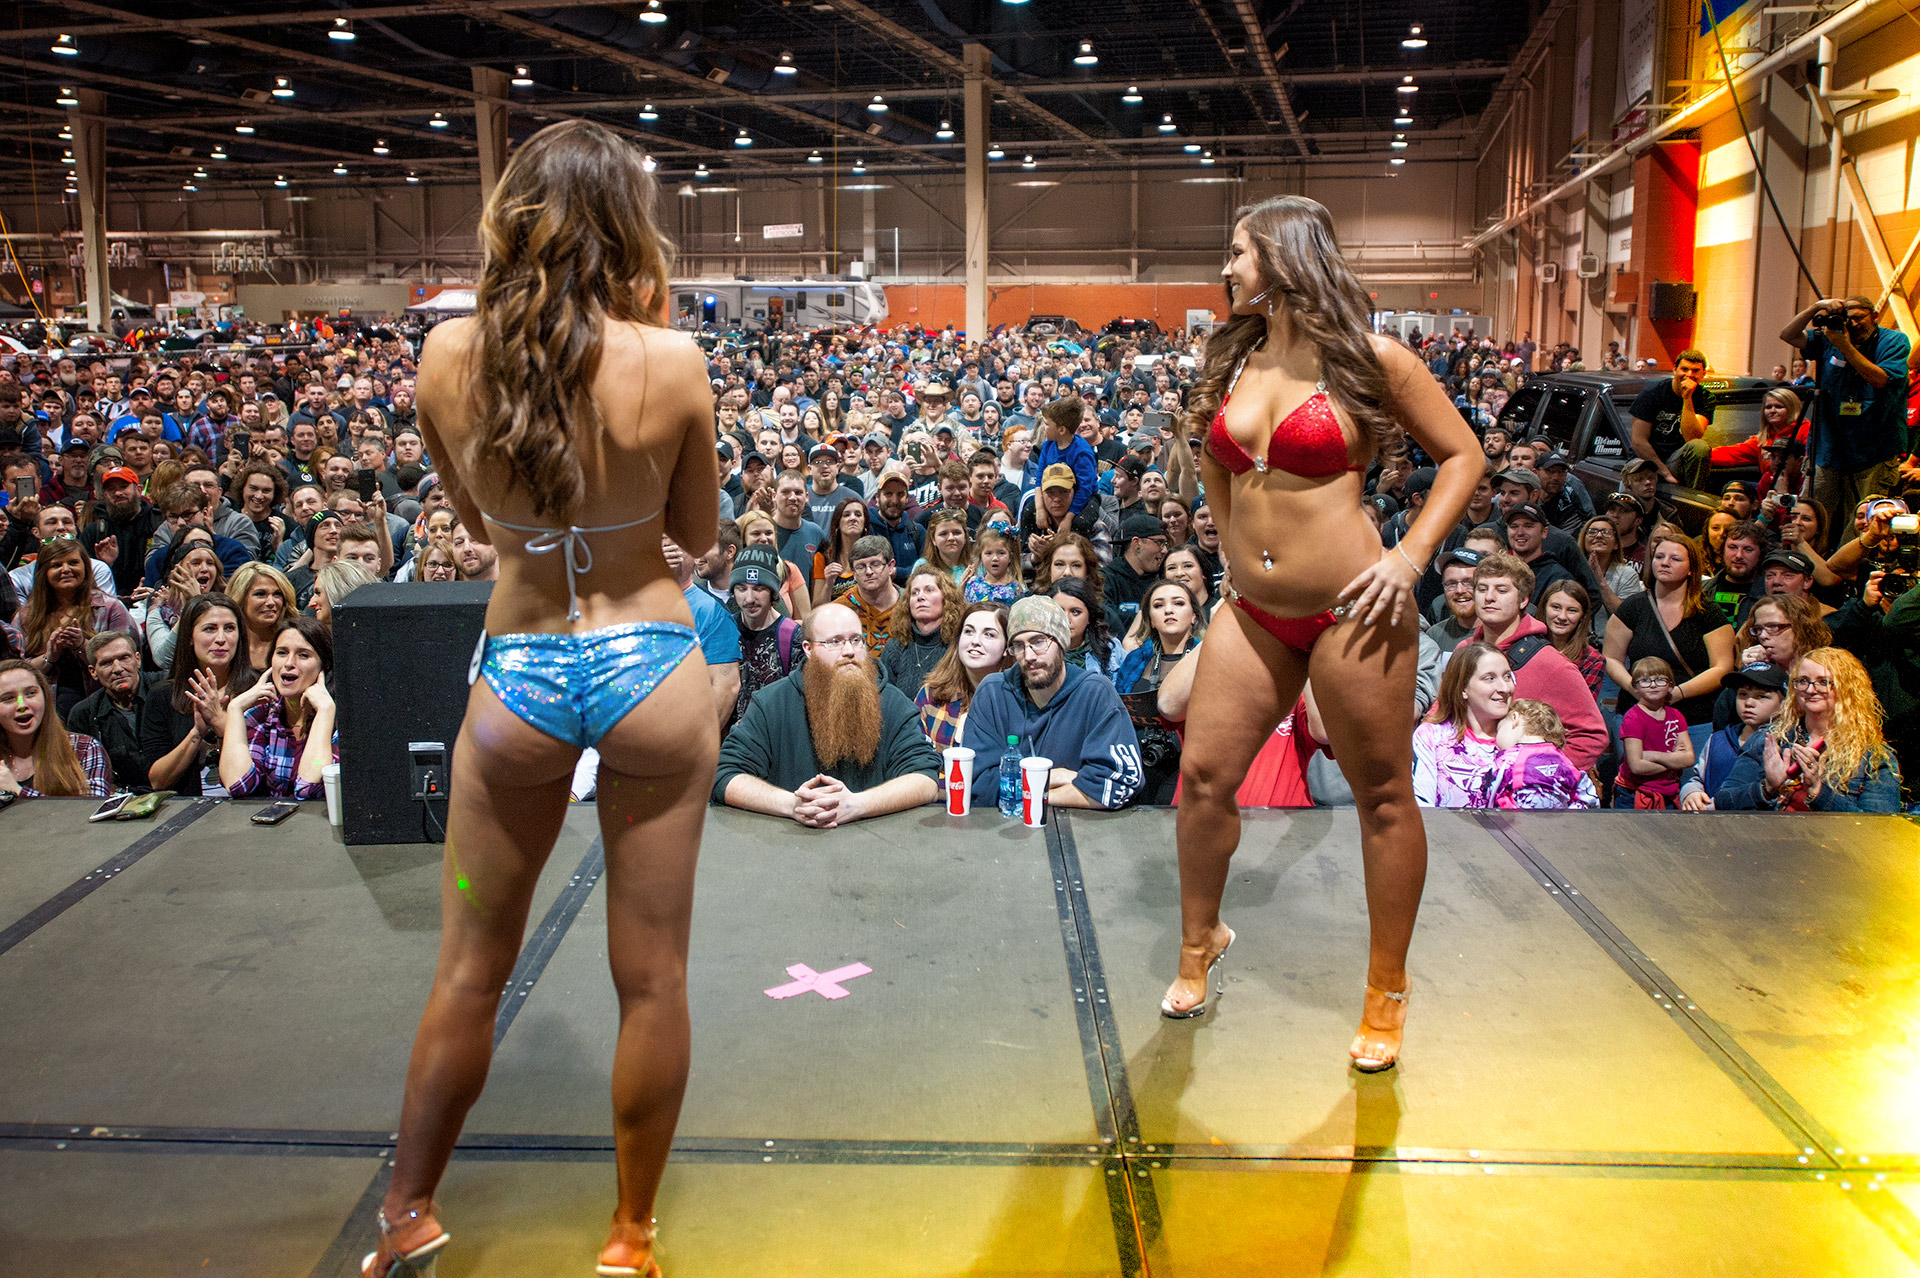 Abby, in red was this years winner of the the 2018 Ms Motorama Bikini Contest. Christina, in bule was the runner up.